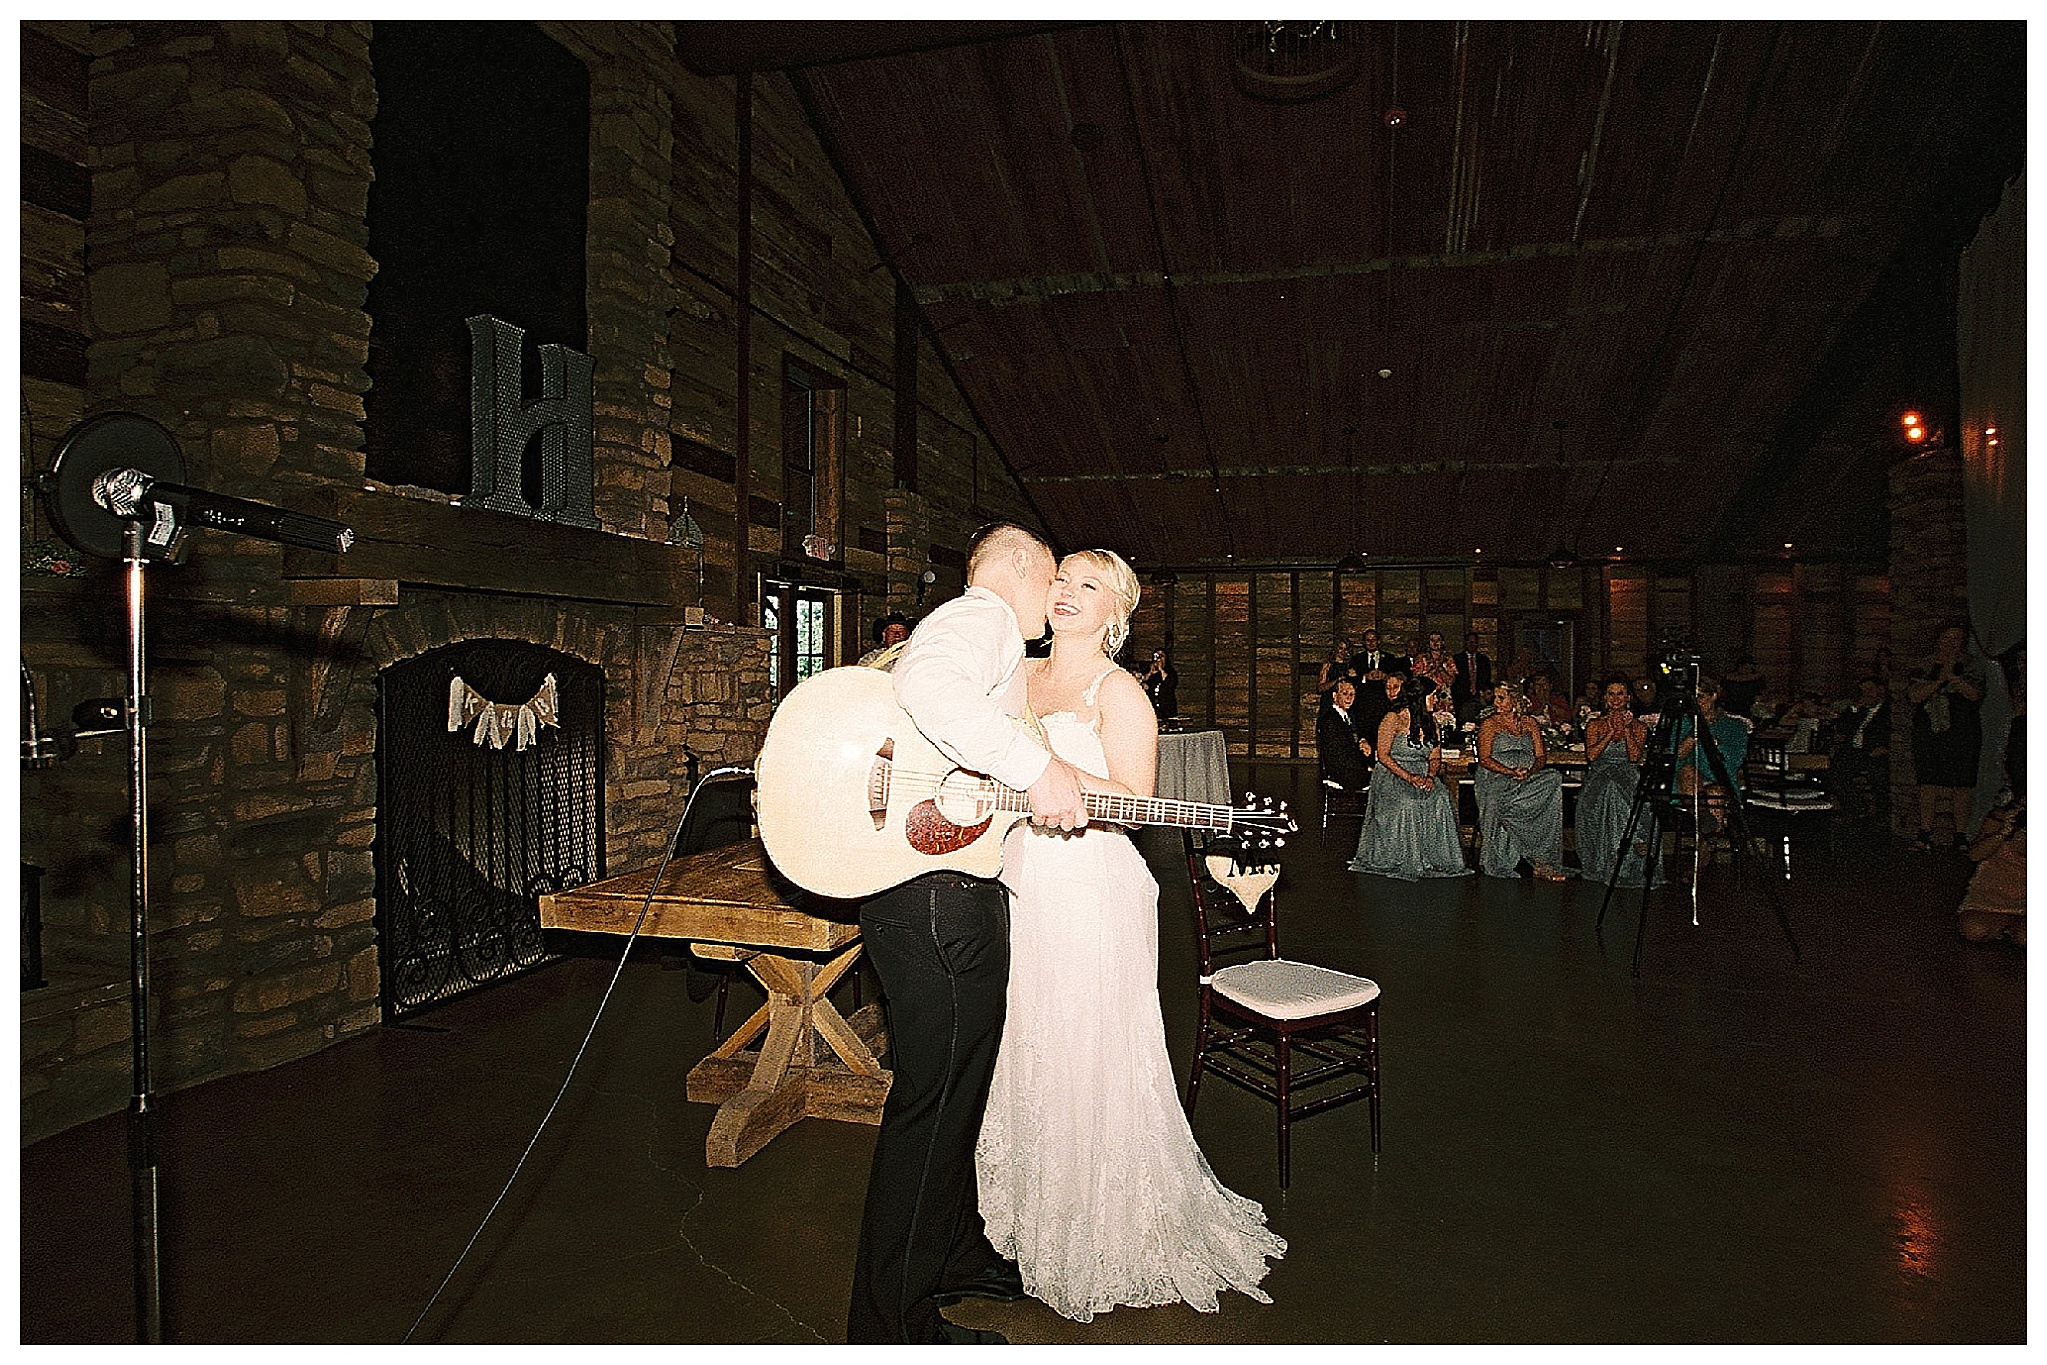 big-sky-barn-wedding-houston-texas_0025.jpg